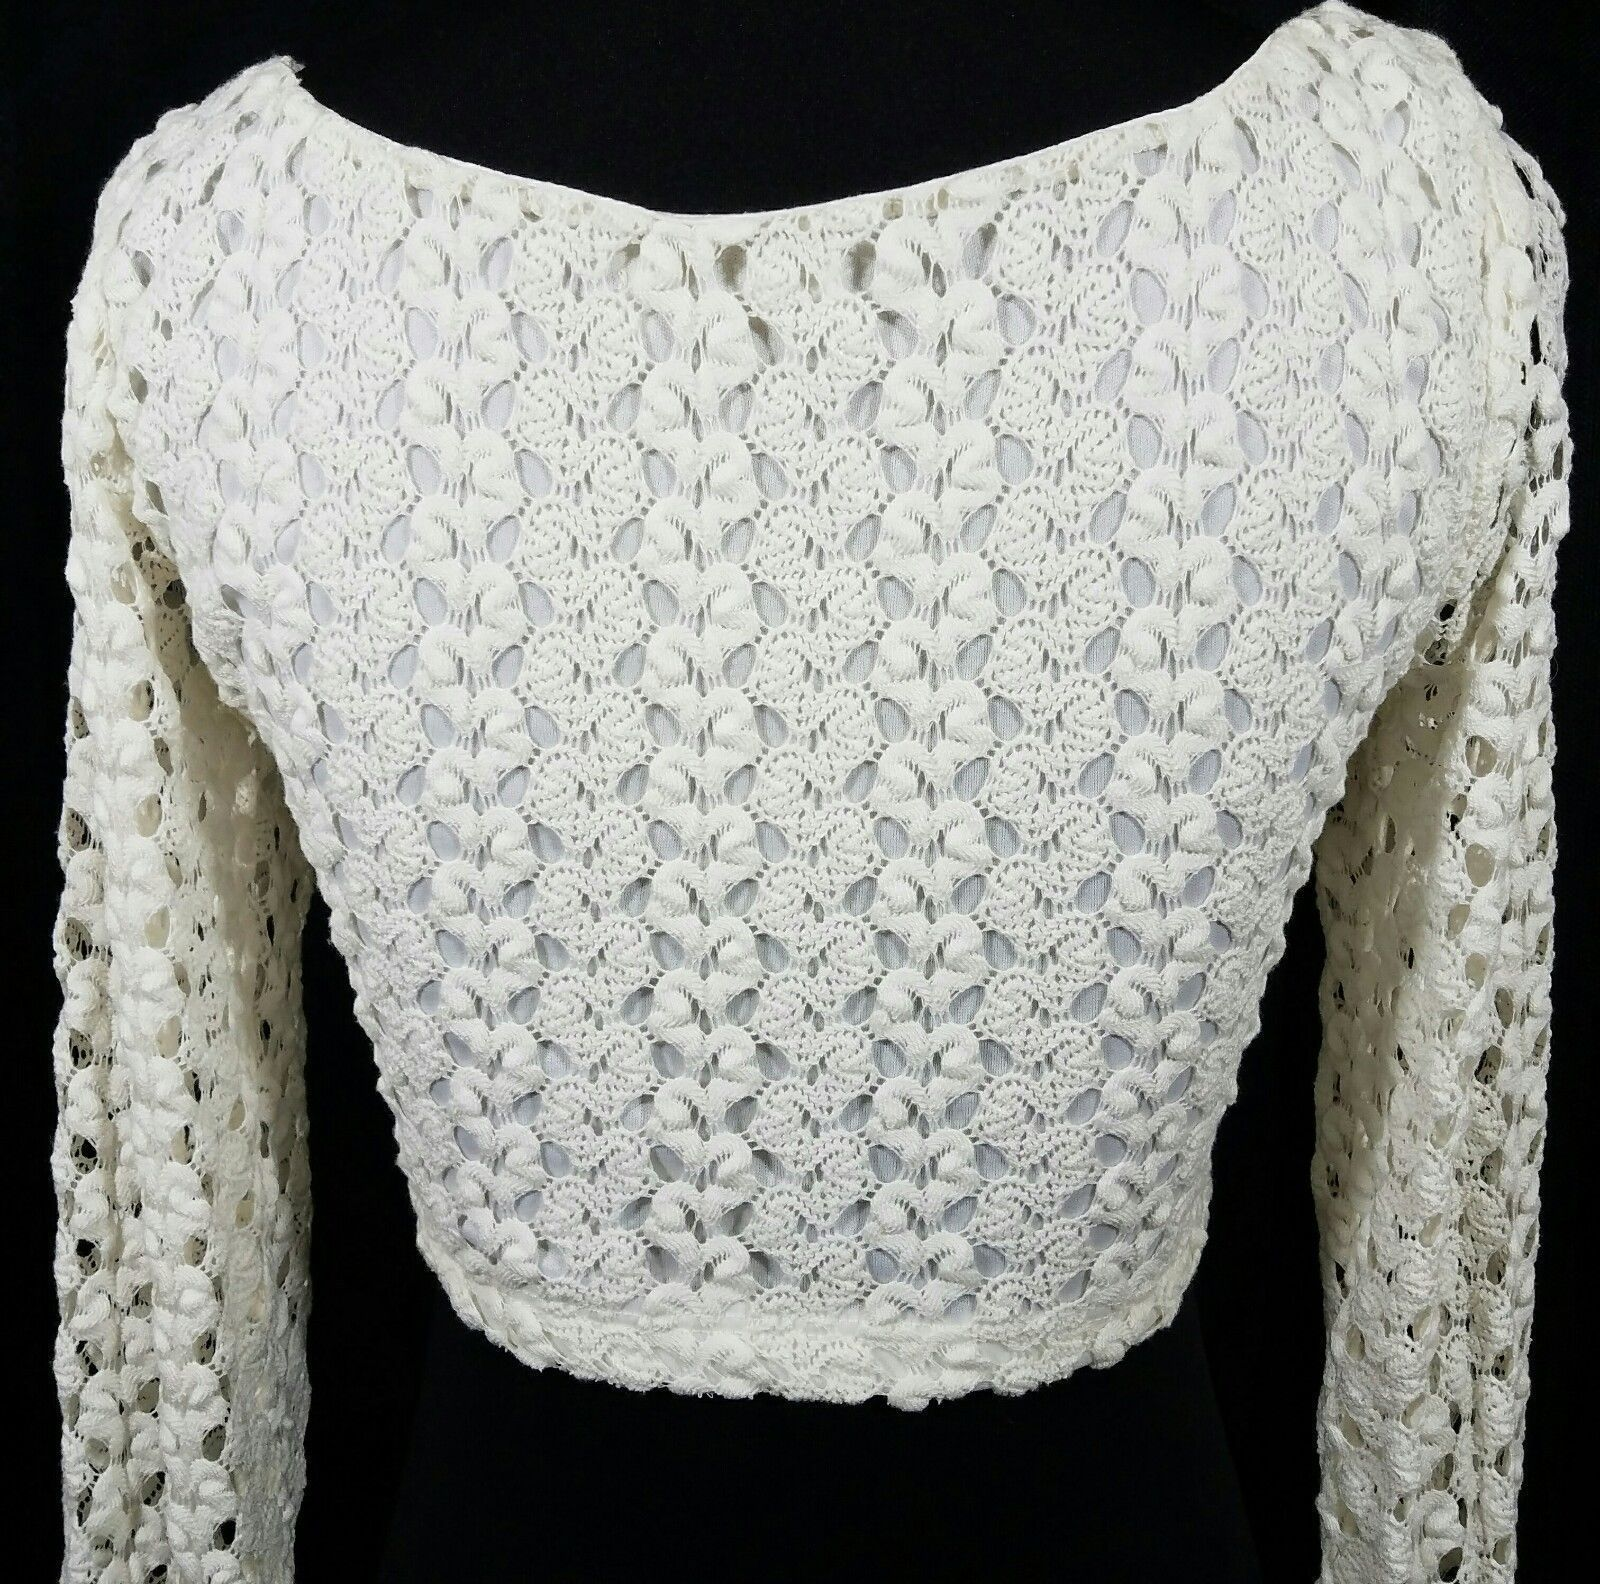 White Knit Crochet Midi Top Long Sleeves Round Neckline Size S NWOT